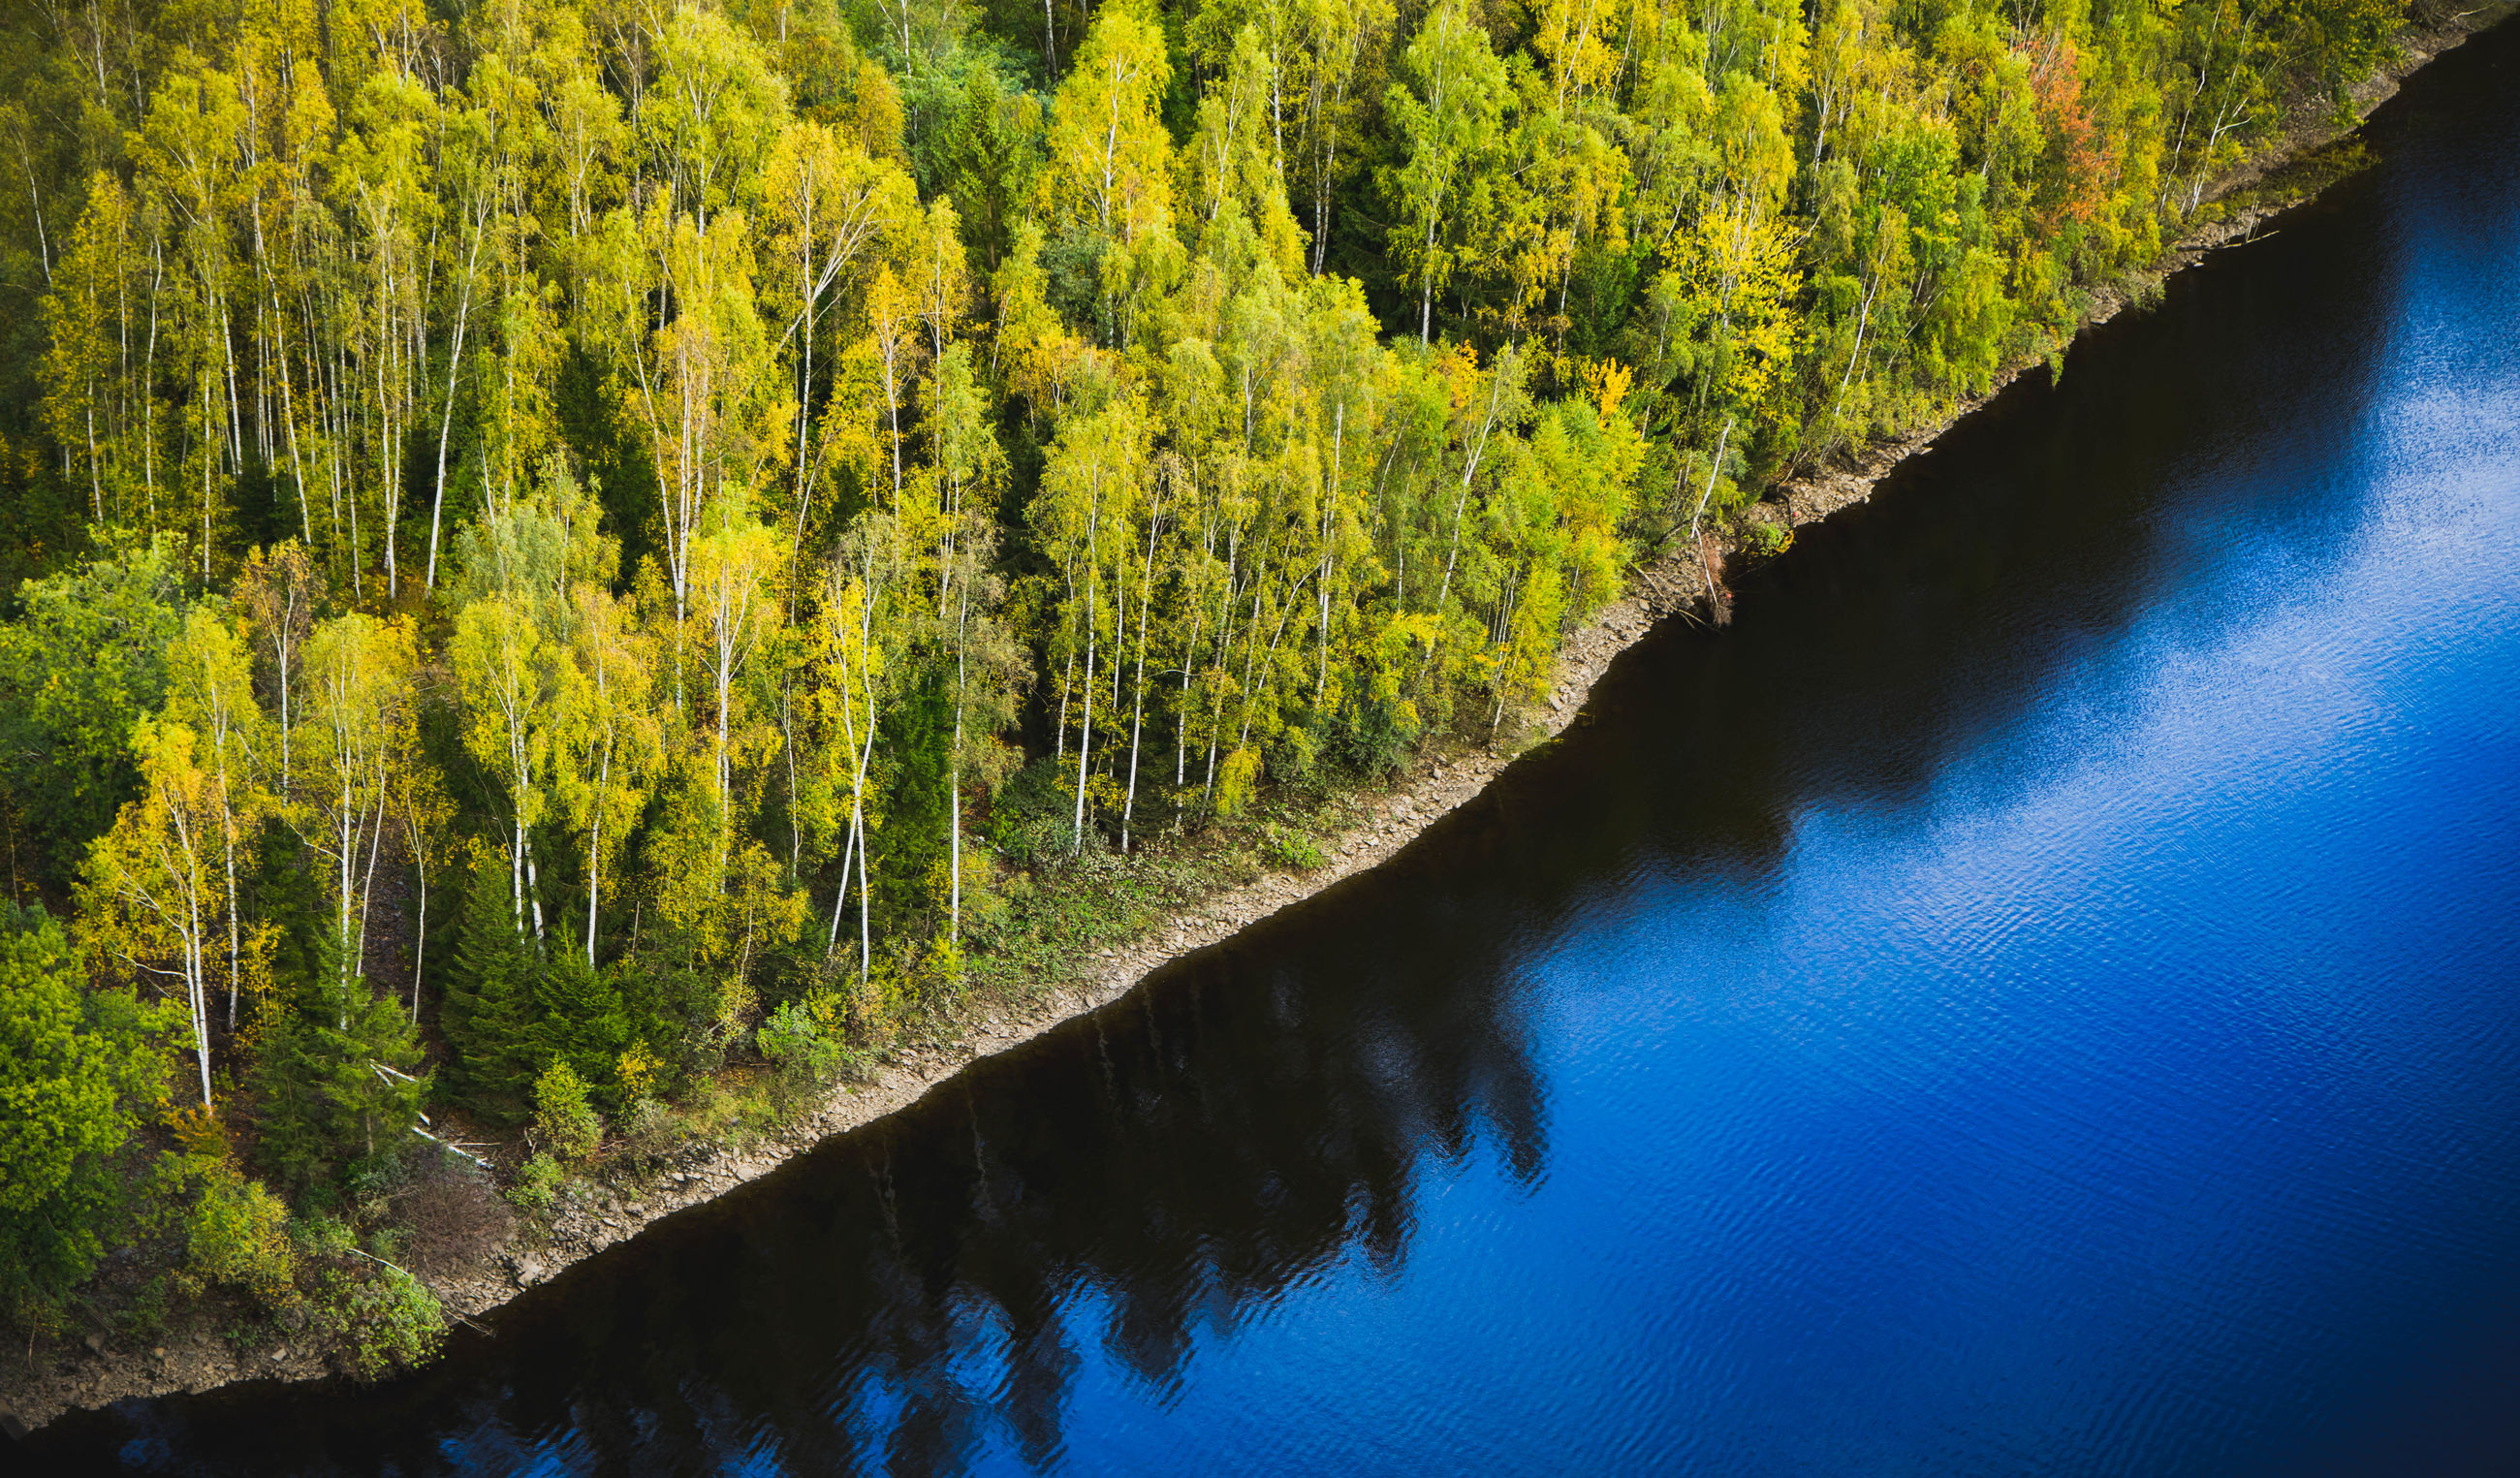 High angle view of trees growing by lake